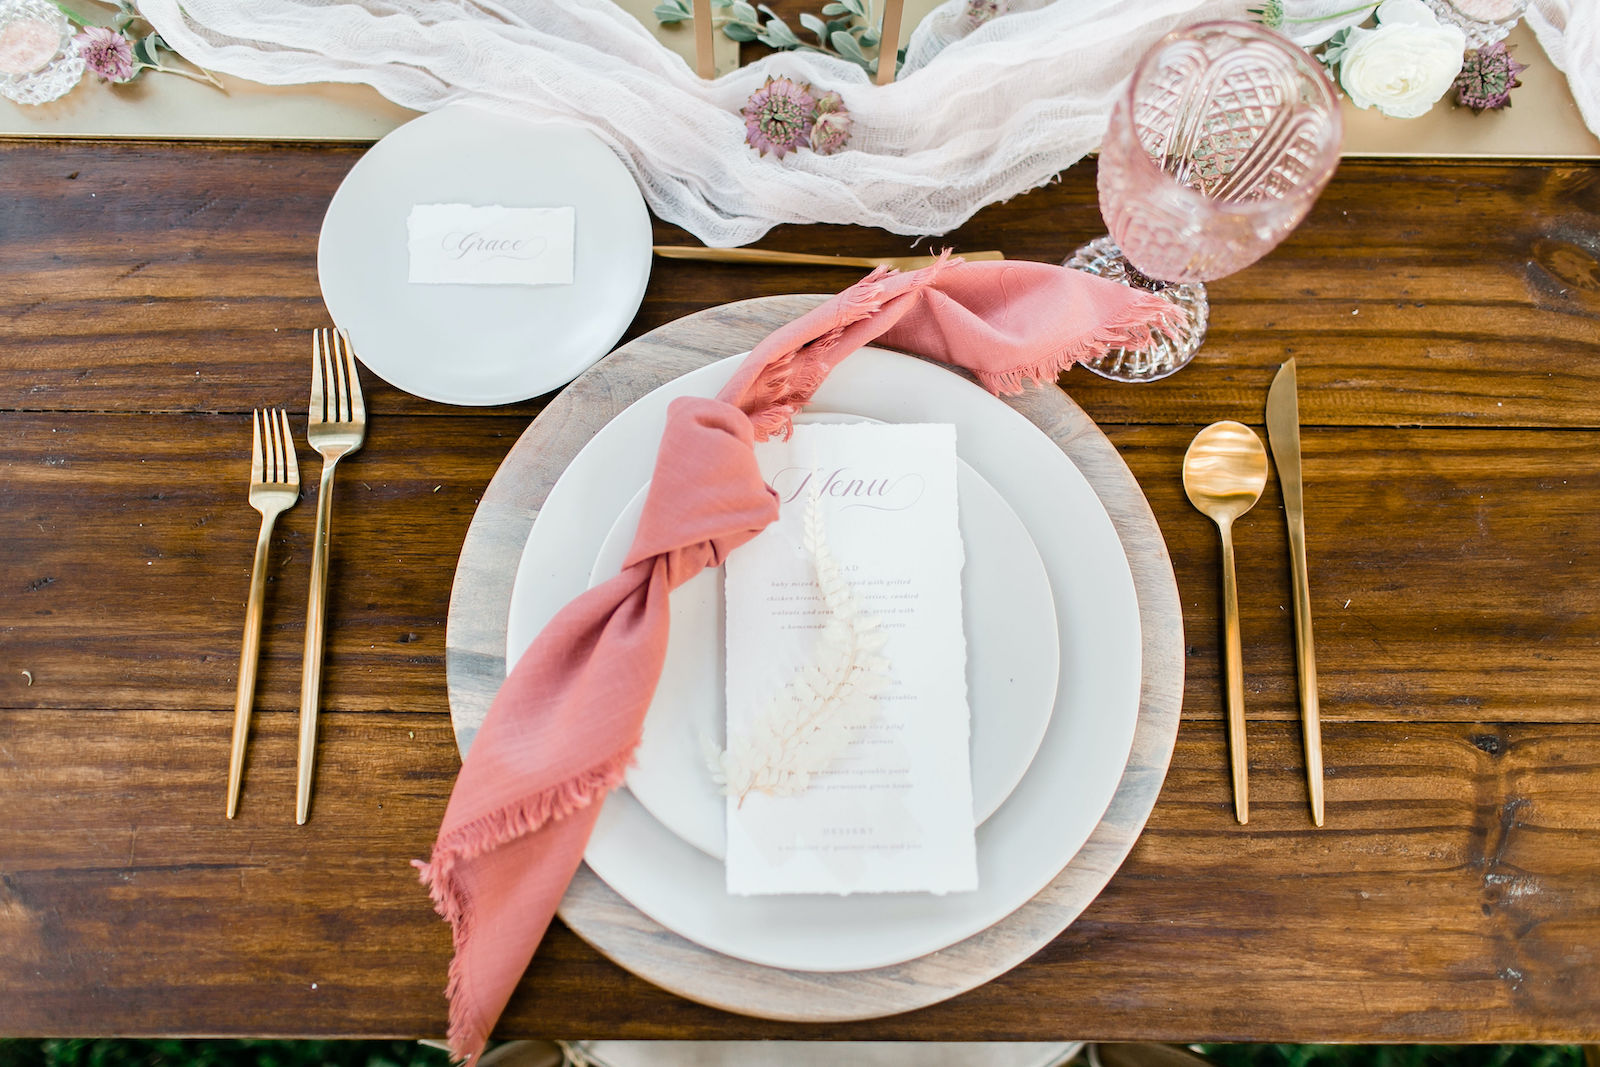 Outdoor Styled Shoot Brunch Breakfast Wedding Reception Table Place Setting with Gold Flatware and Whitewash Wood Charger Plate with Blush Pink Napkins and Menu Card and Vintage Glassware Goblets at Place Settings